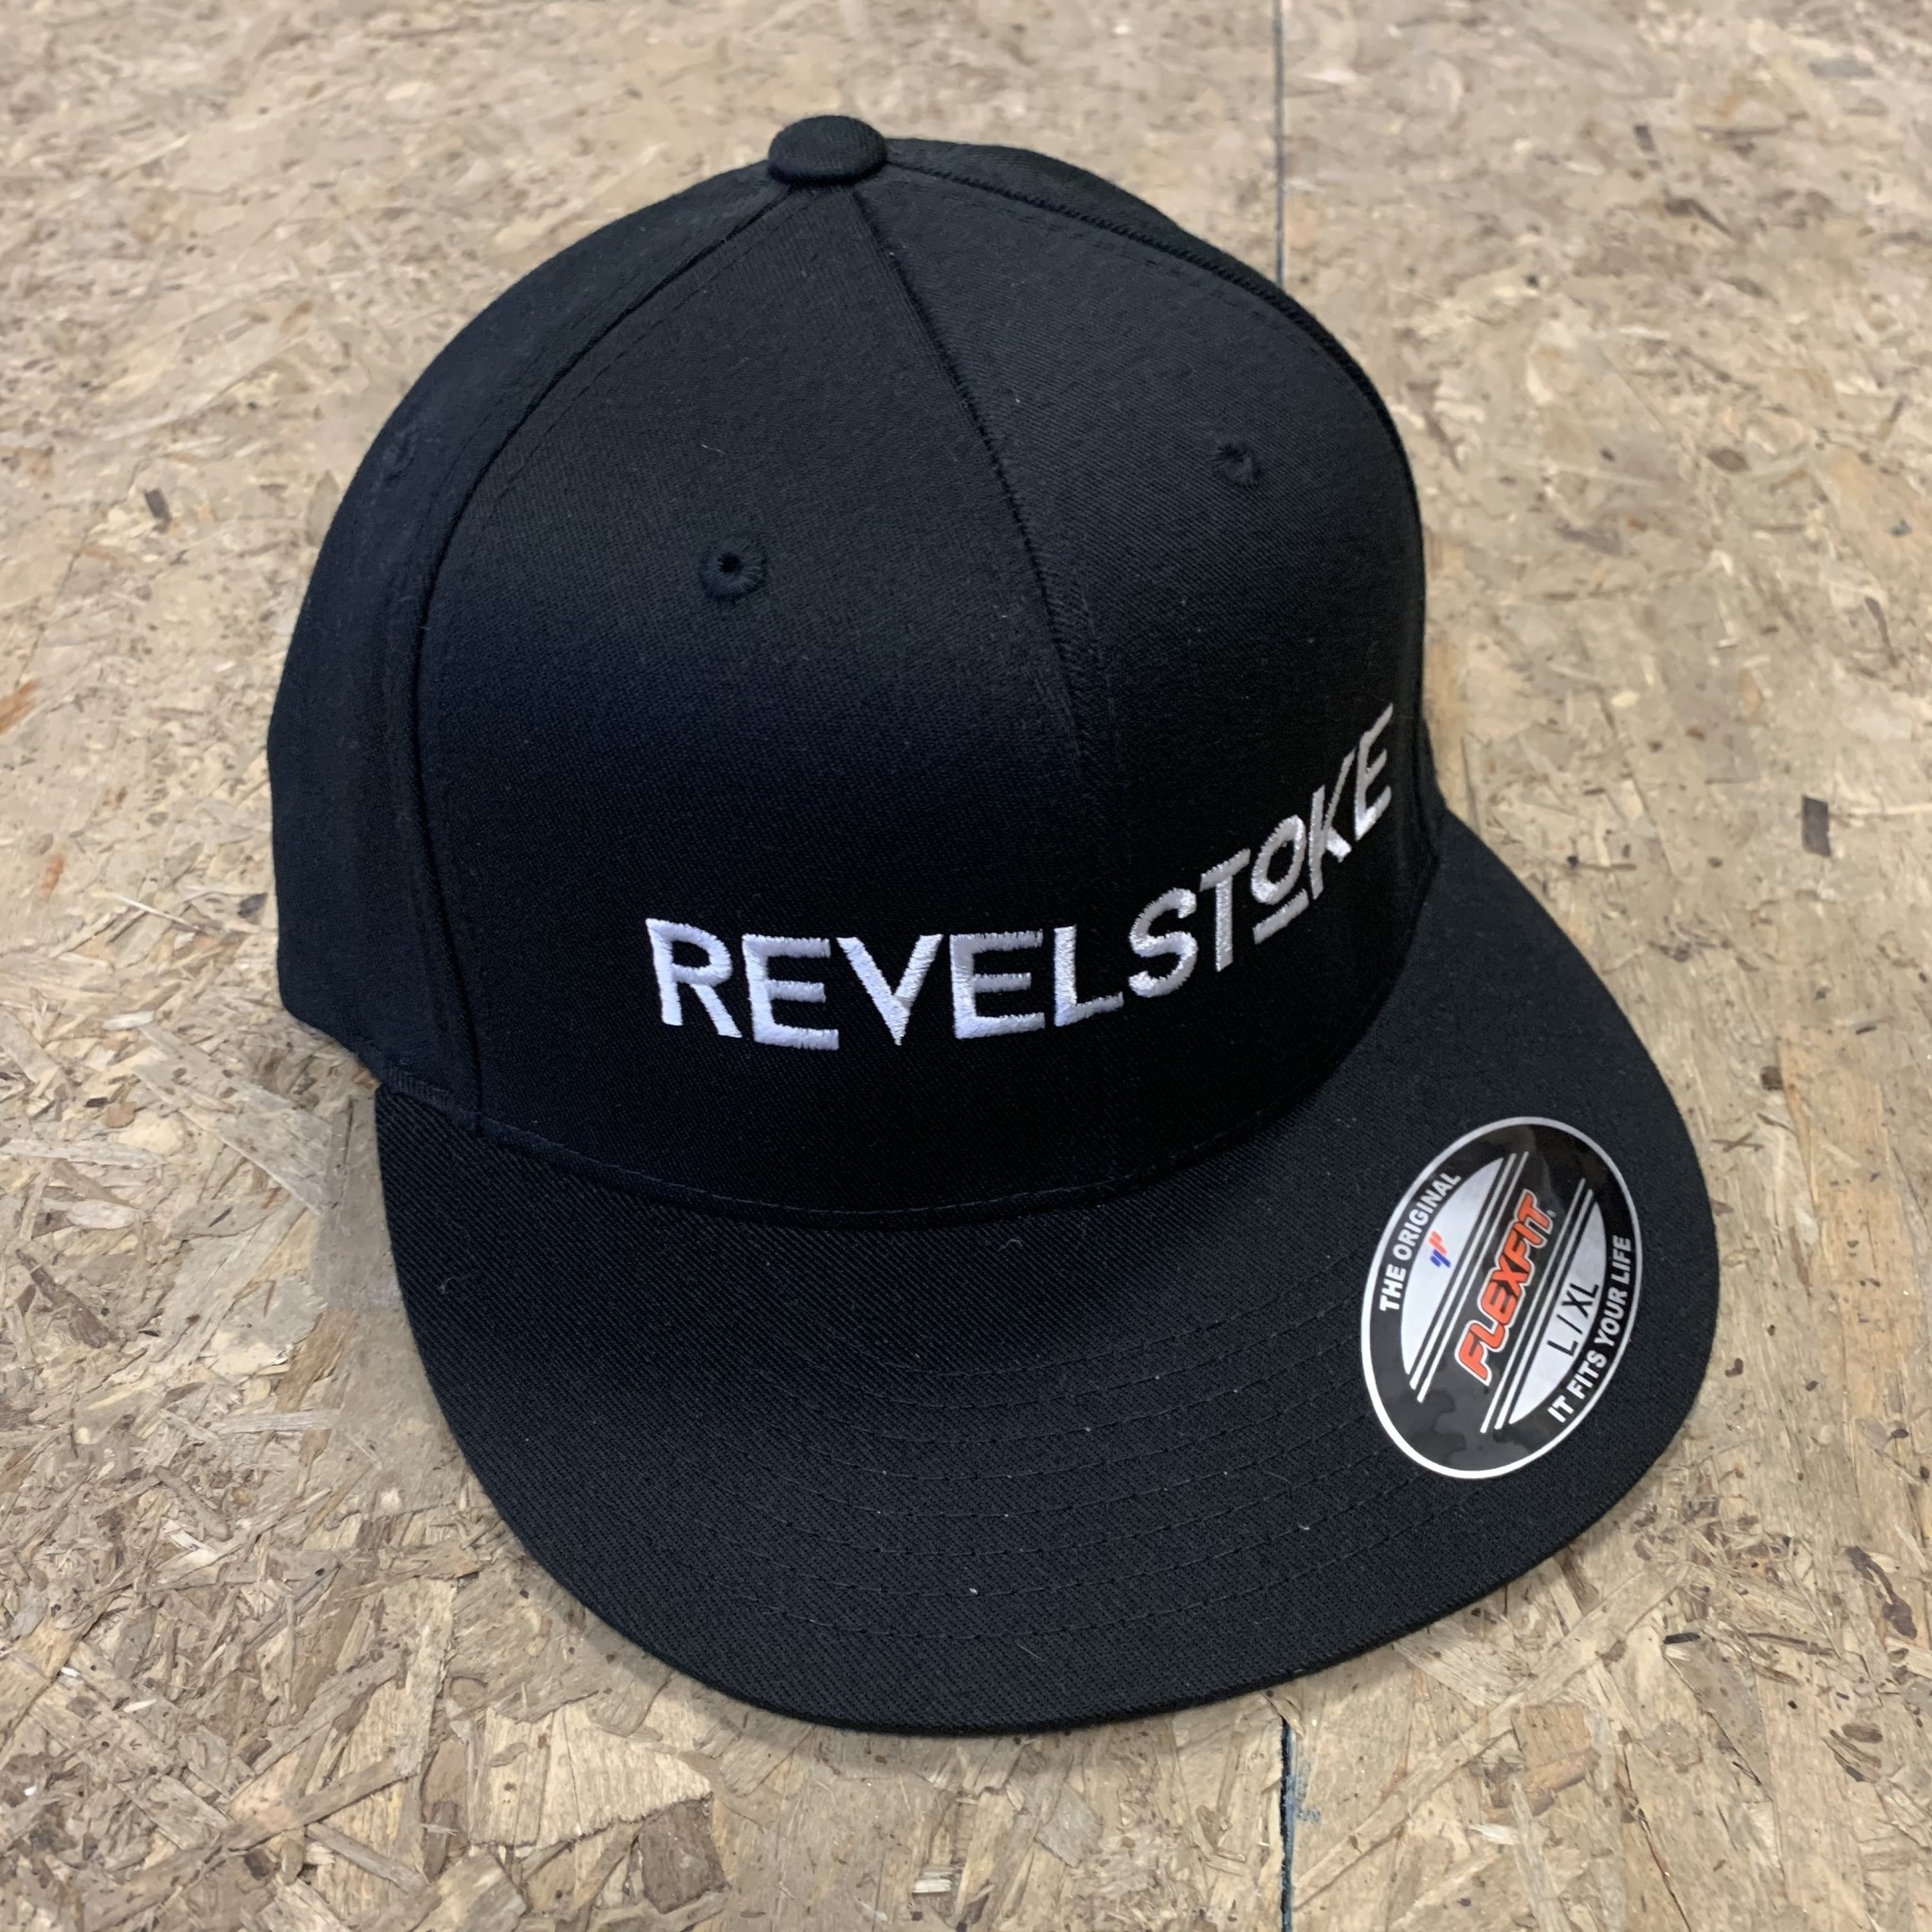 Revelstoke Trading Post Revelstoke - Trading Co. Hat - FlexFit